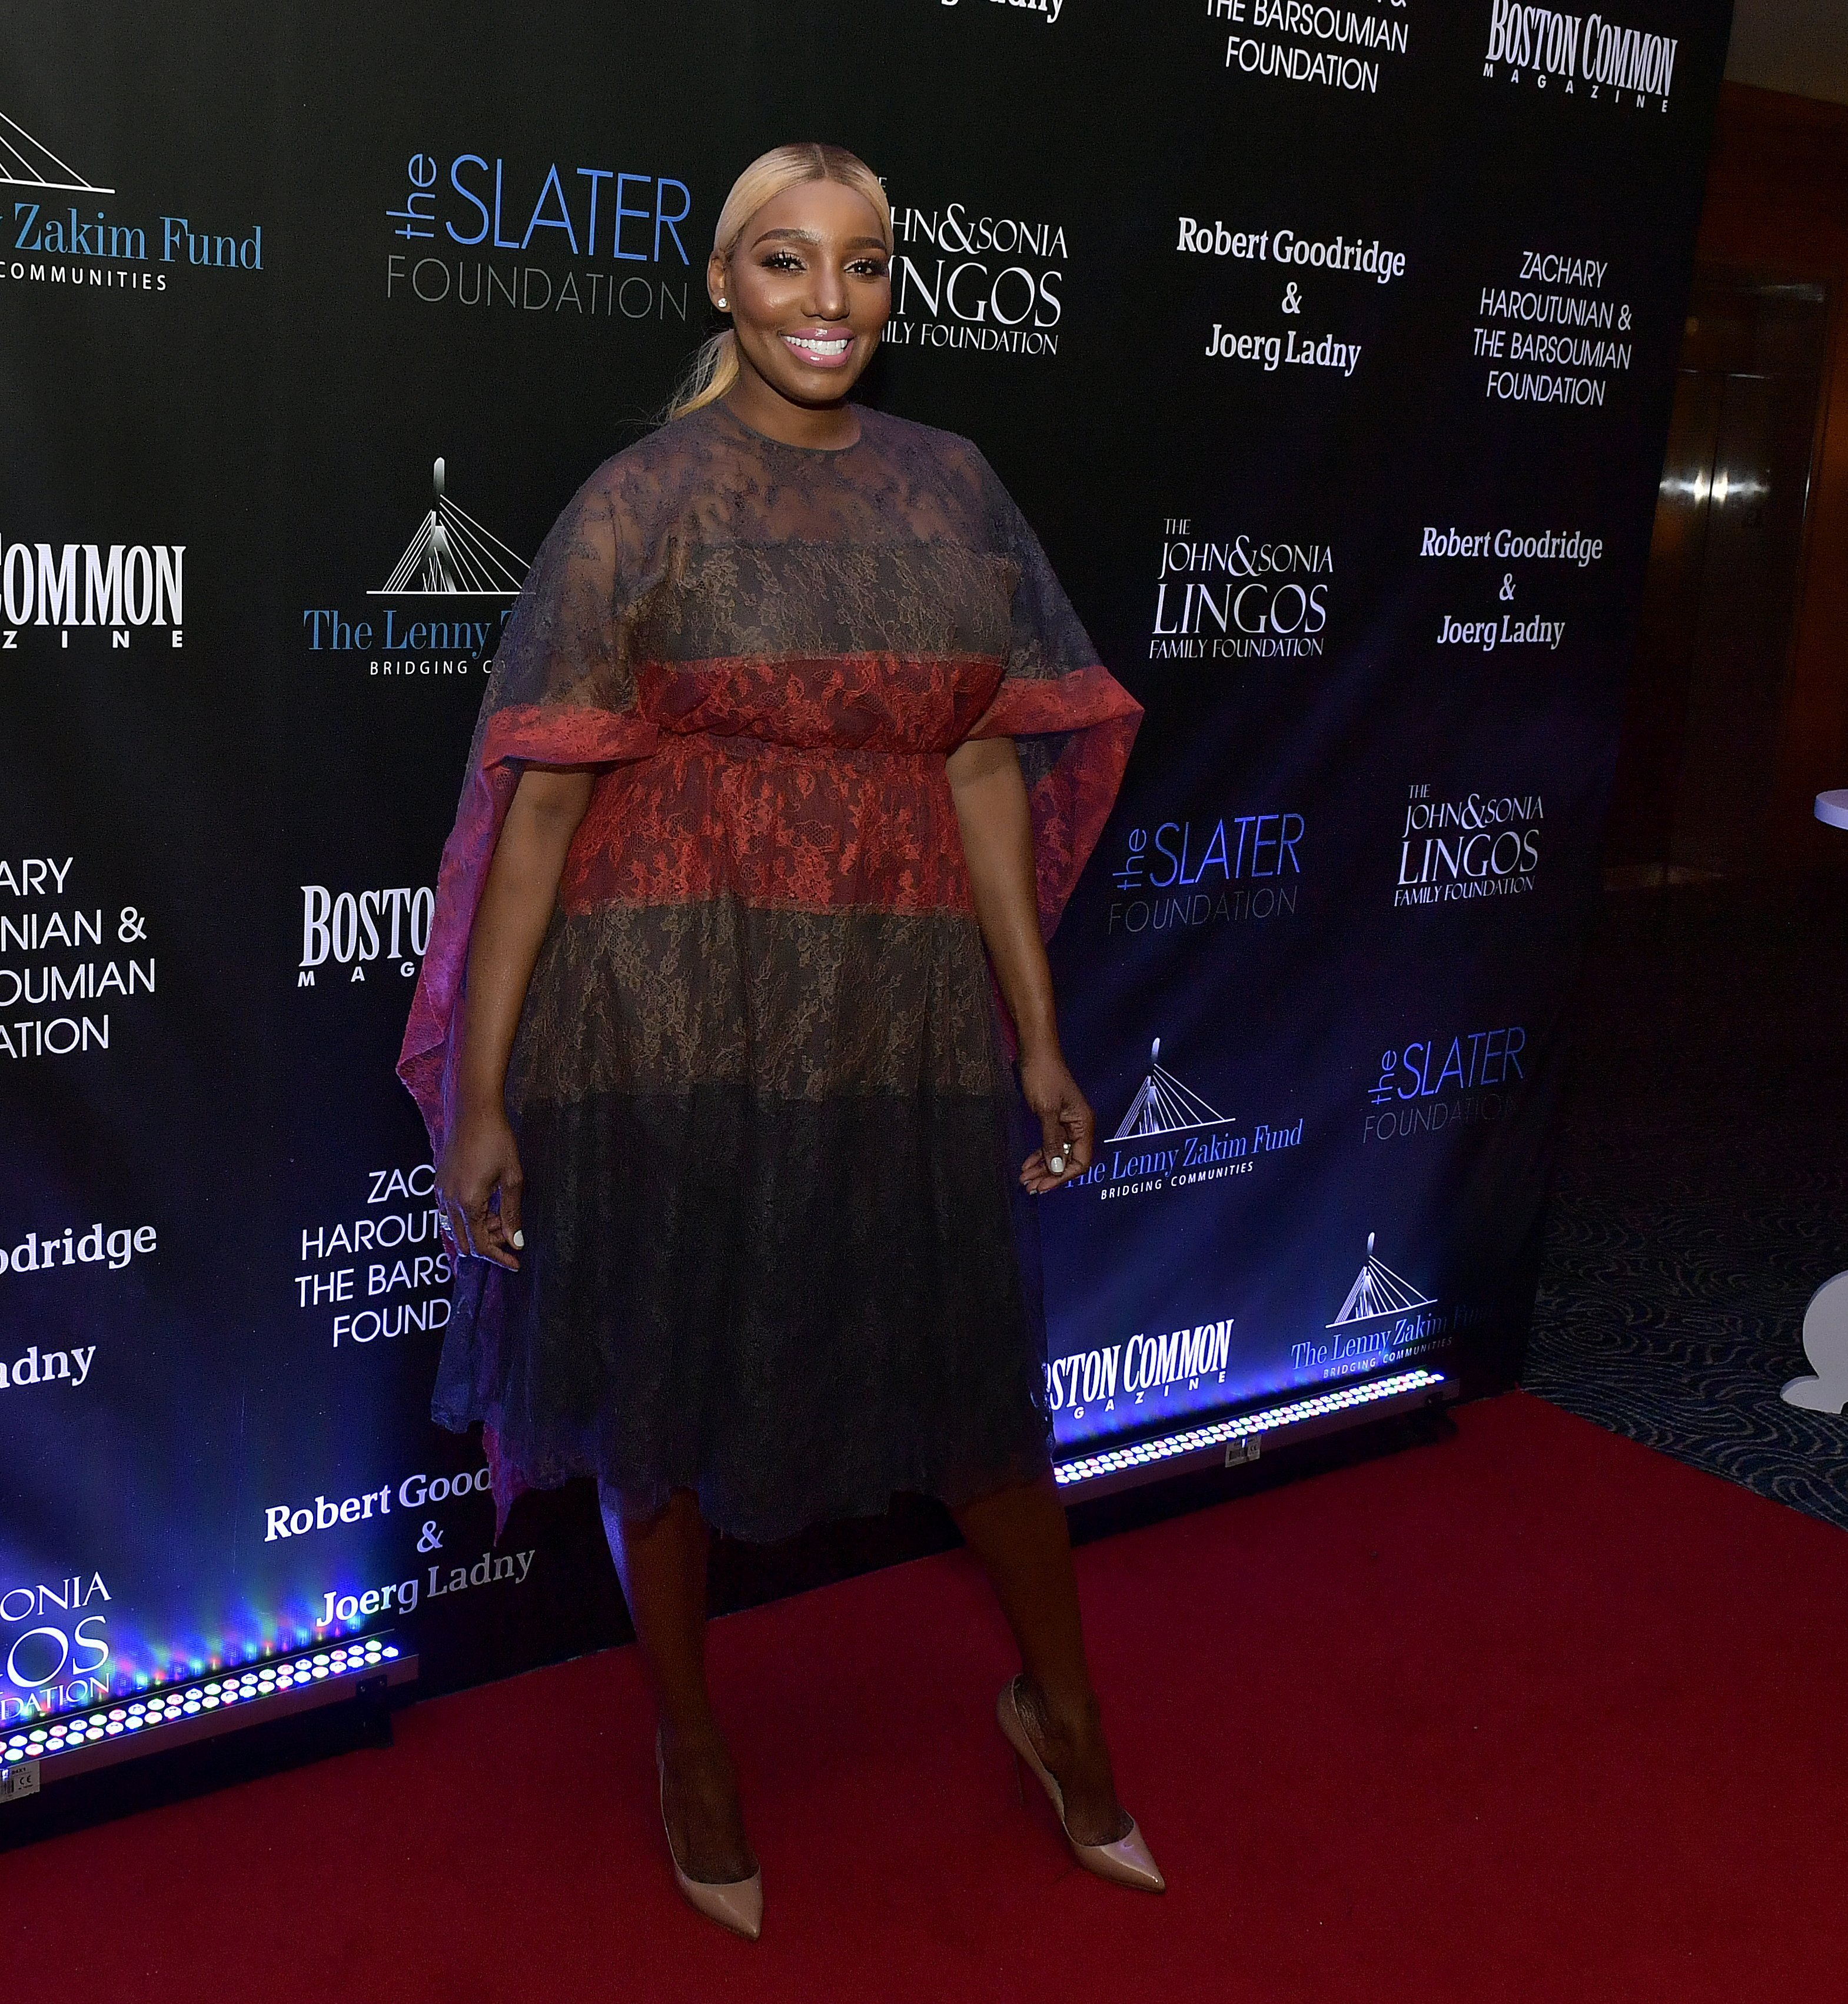 NeNe Leakes at the Lenny Zakim Fund's 9th Annual Casino Night on March 3, 2018 in Boston, MA | Photo: Getty Images